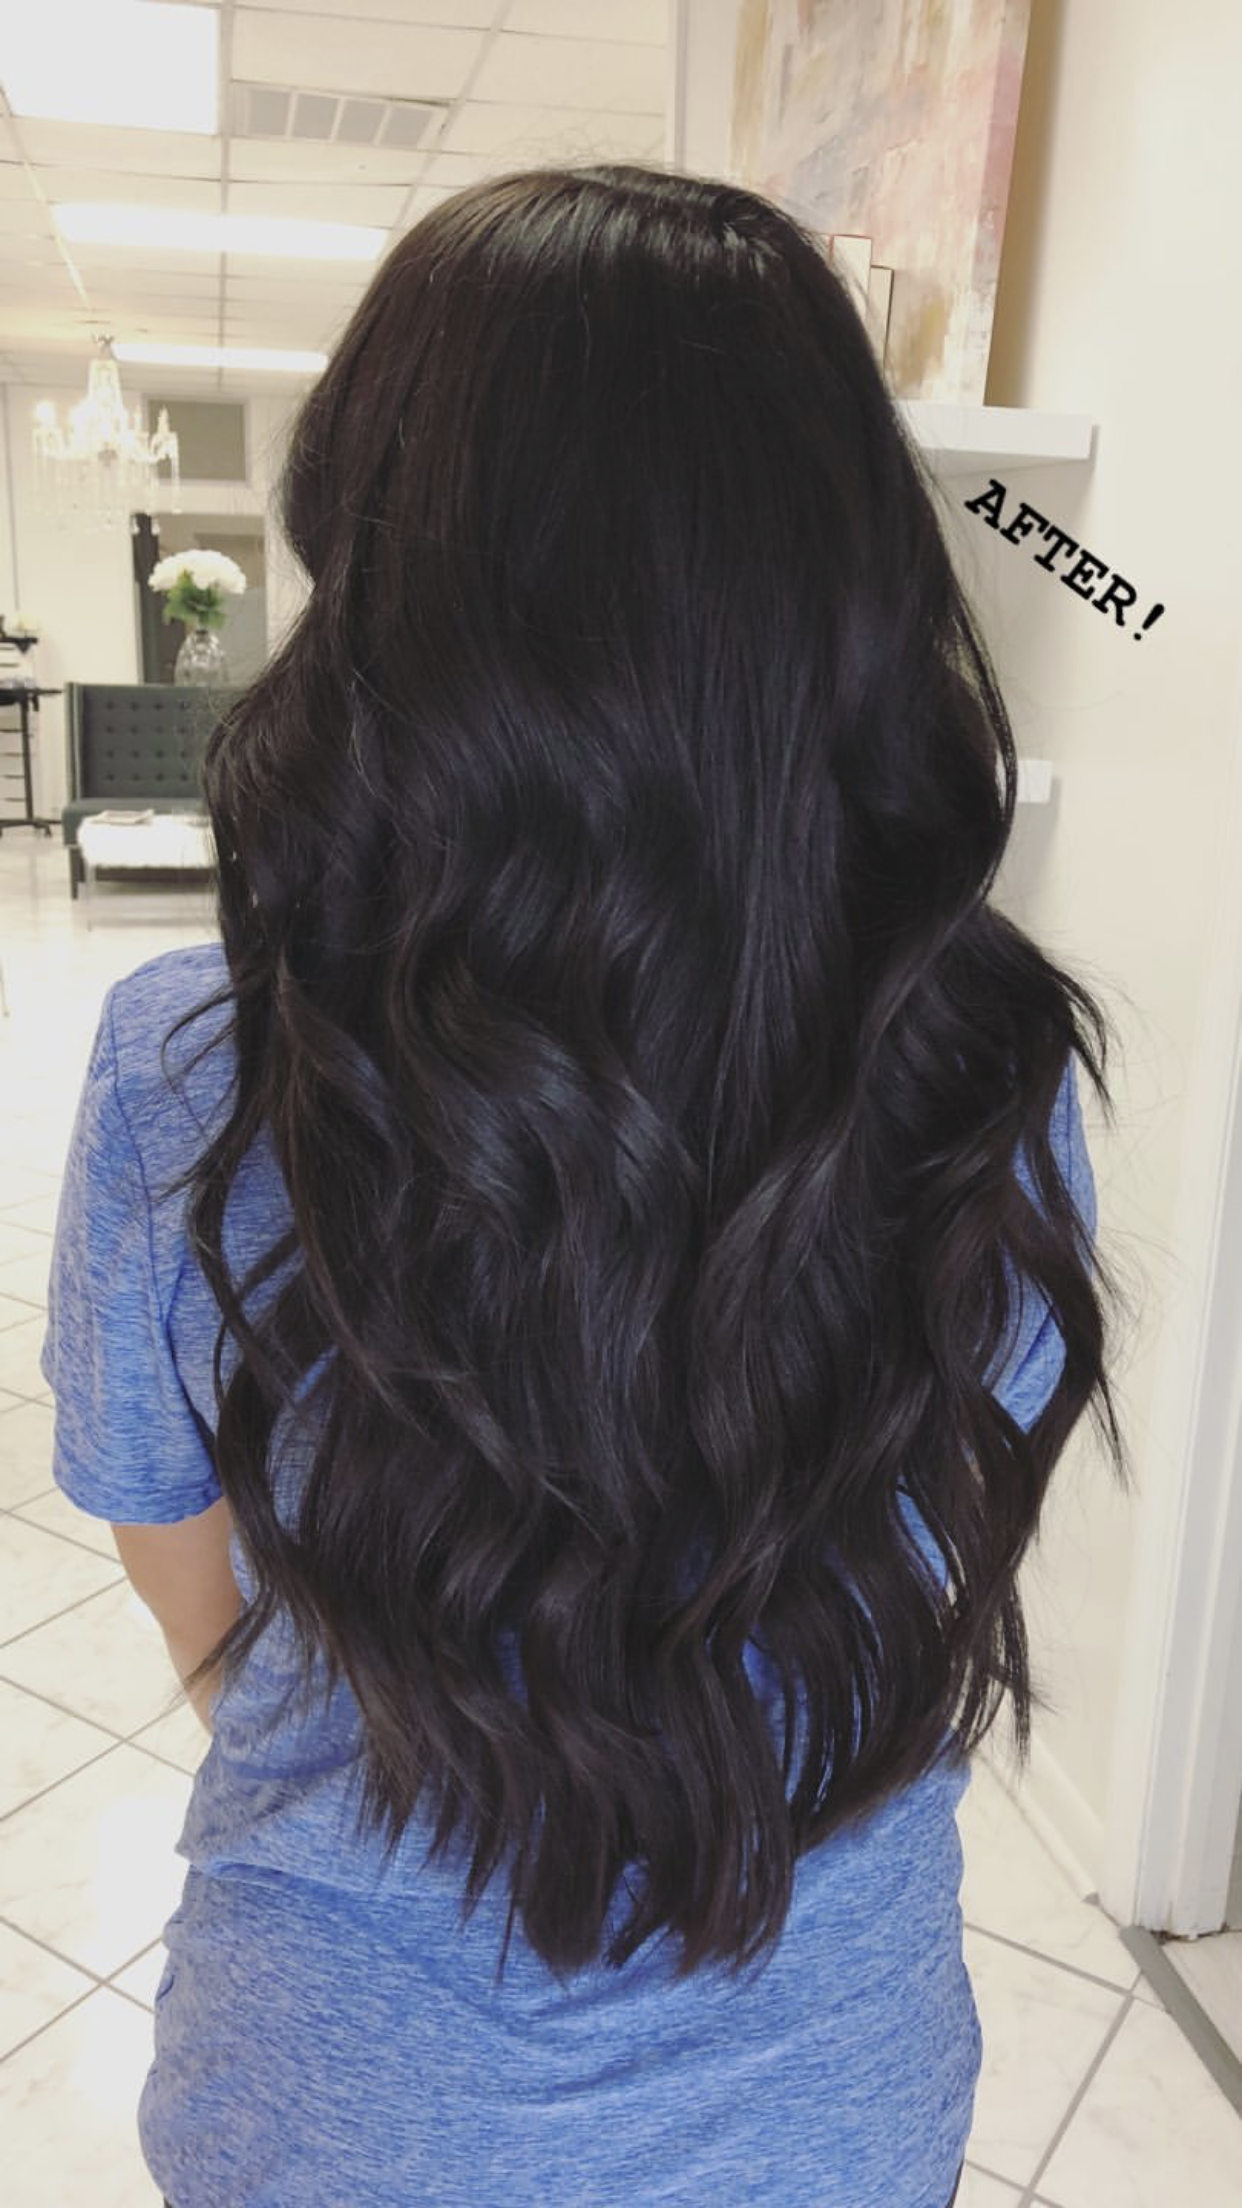 Pin By Tamires Thalia On Wlosy In 2020 Curly Hair Styles Aesthetic Hair Hair Levels